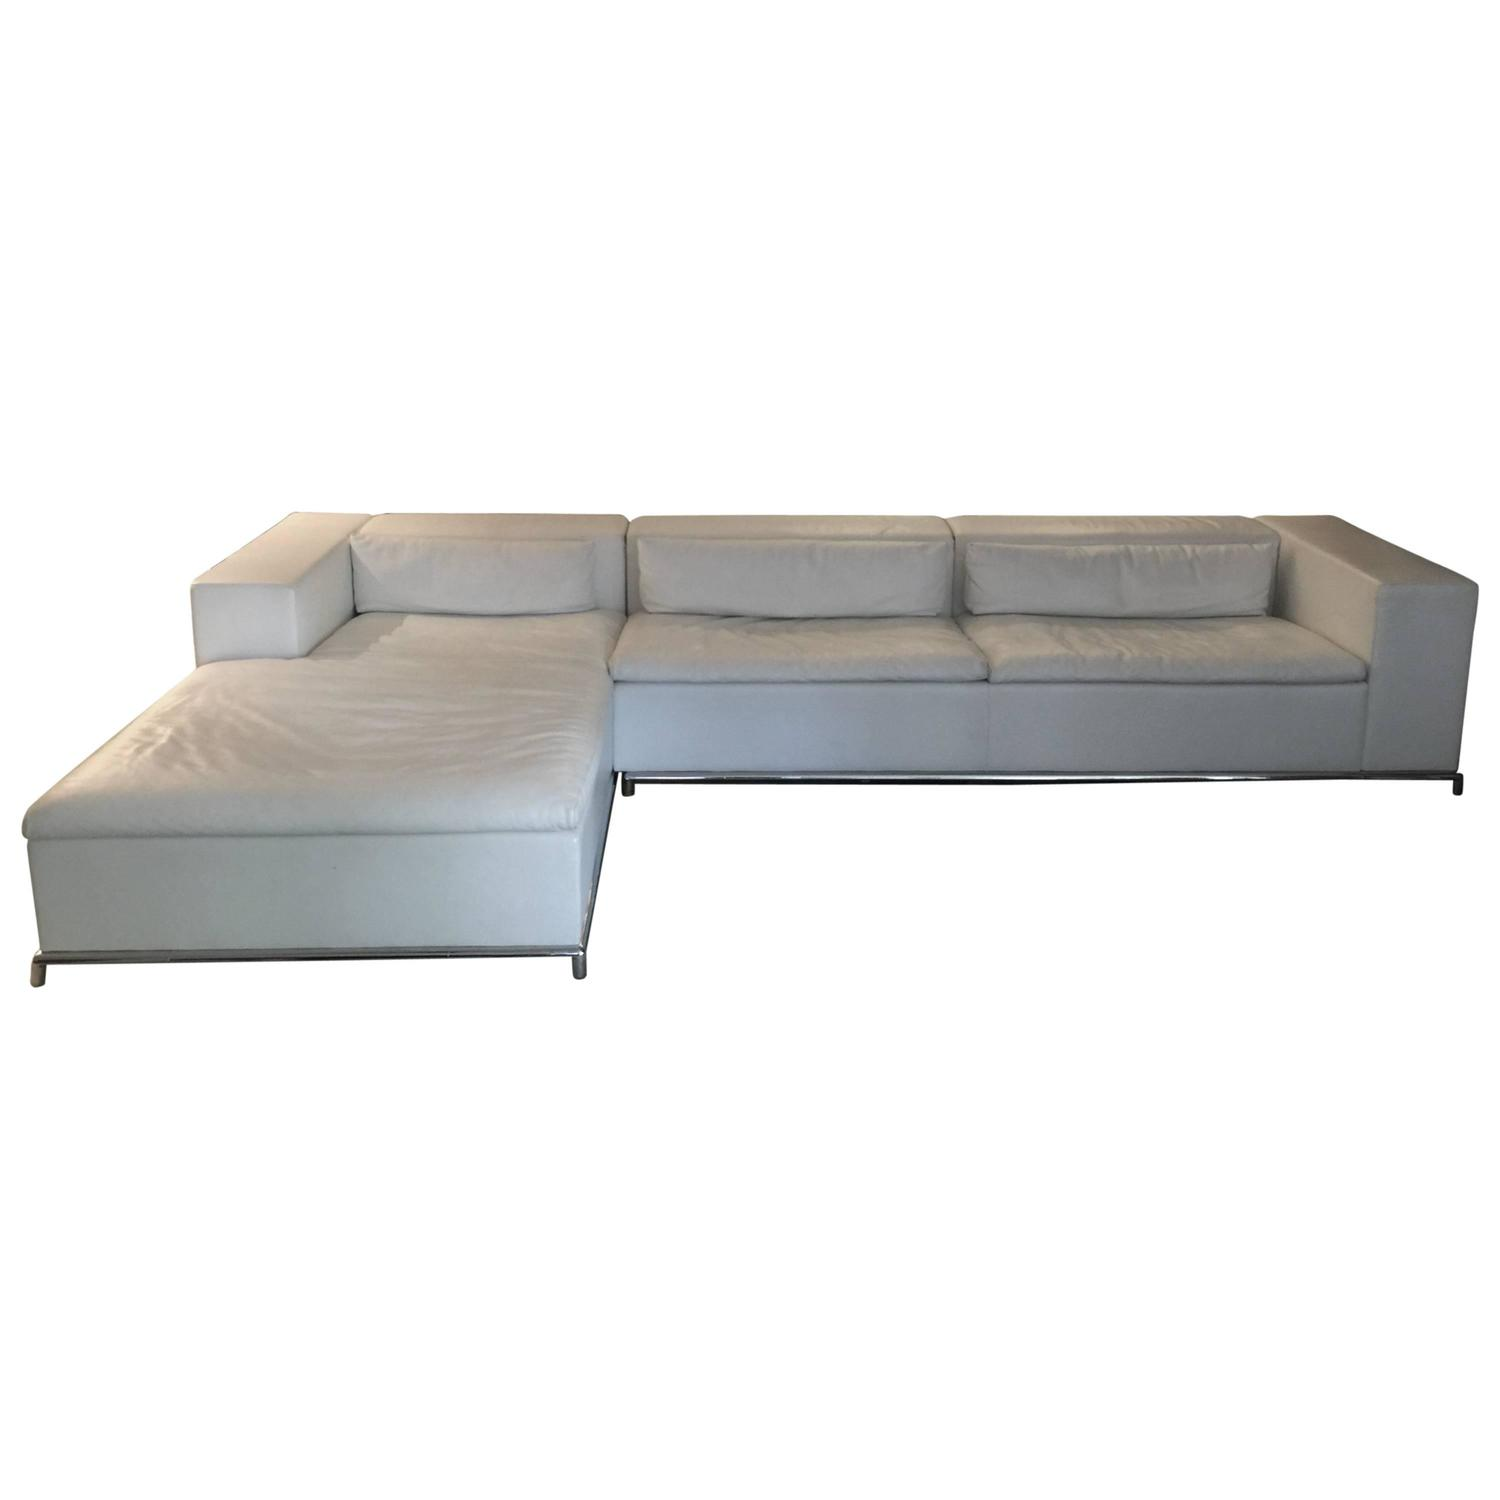 1990s Sectional Sofas 5 For Sale at 1stdibs